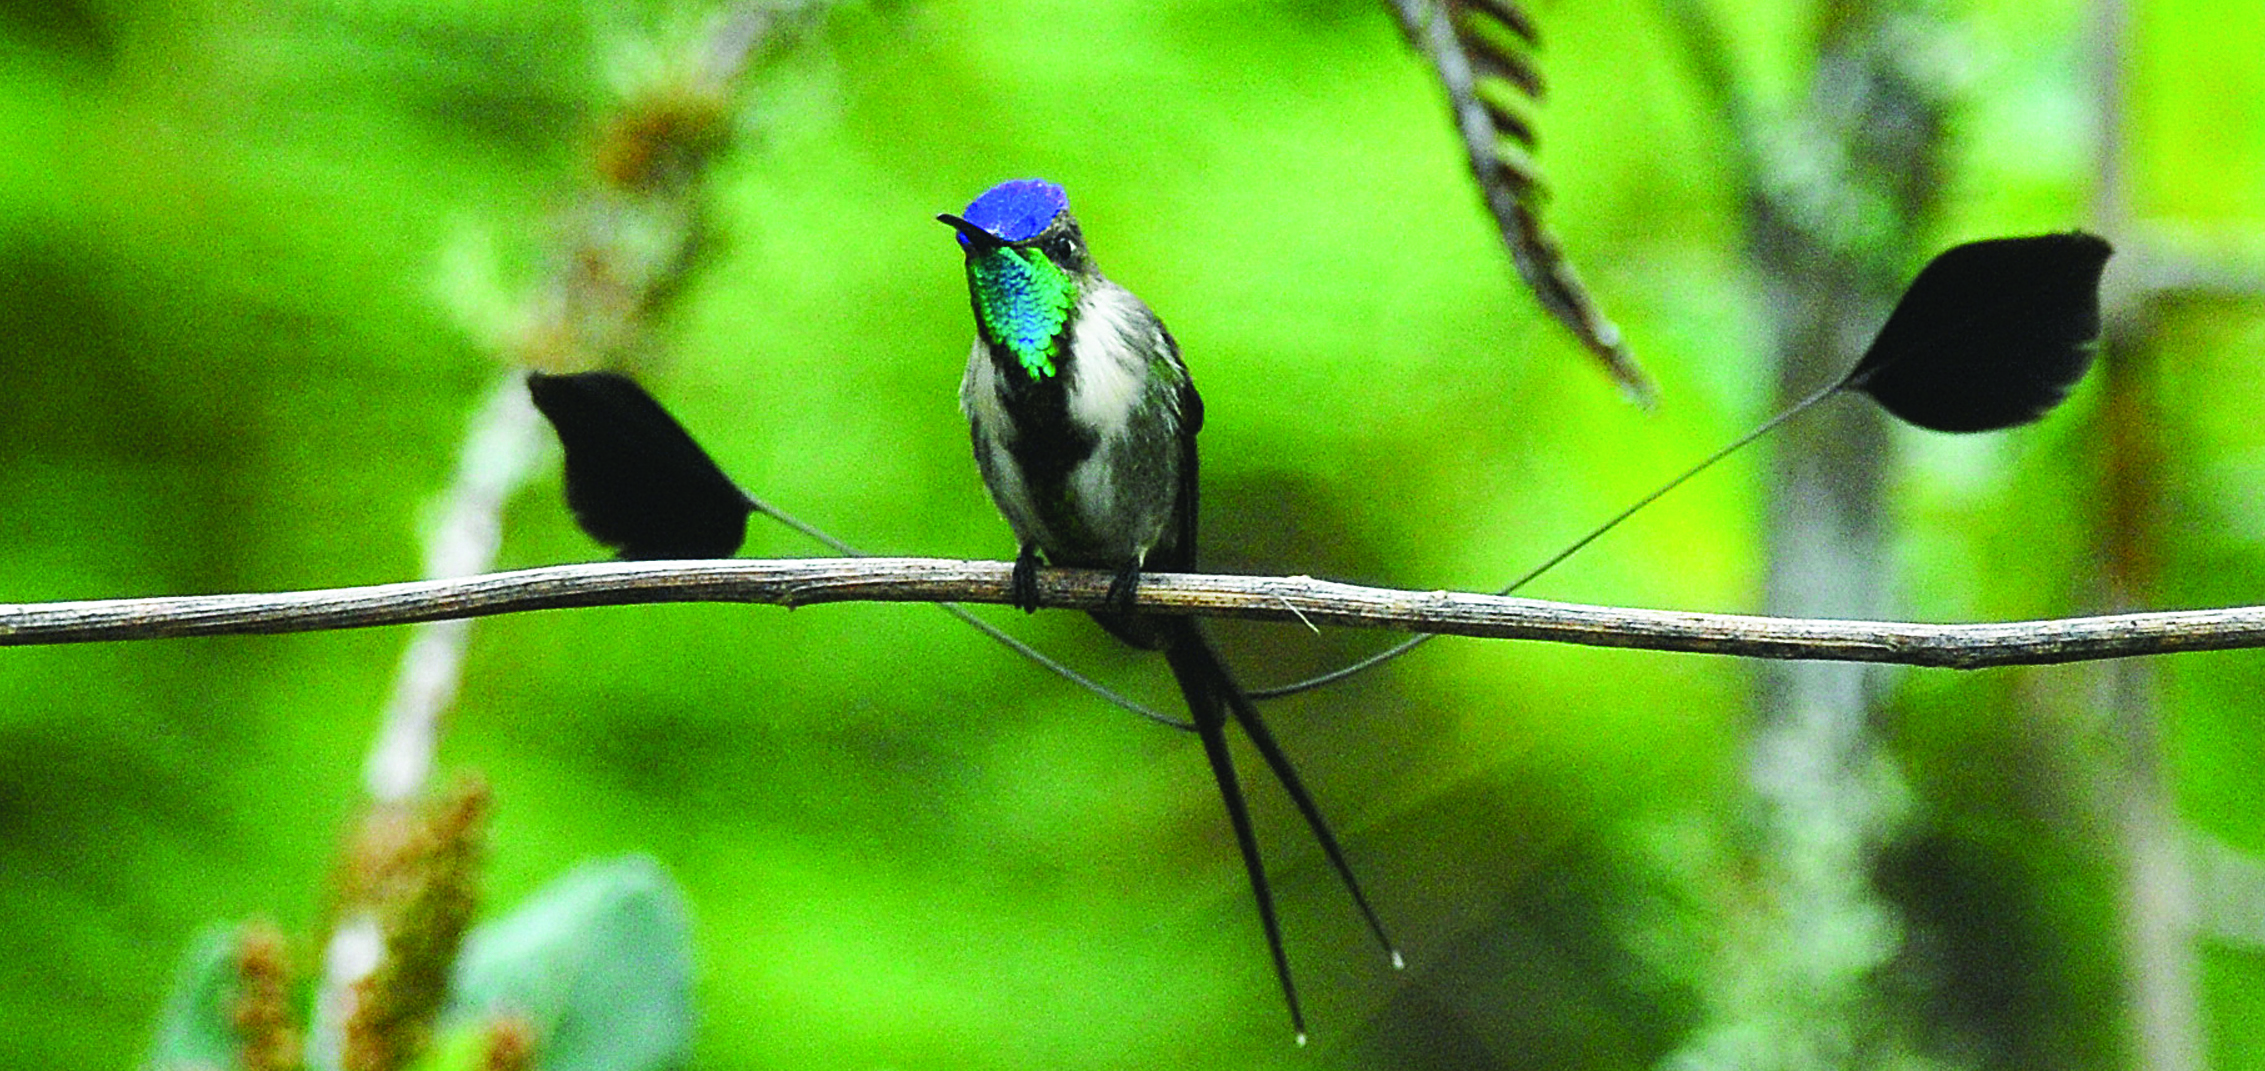 Eye on conservation: An acreage increase for the spectacular Marvelous Spatuletail hummingbird